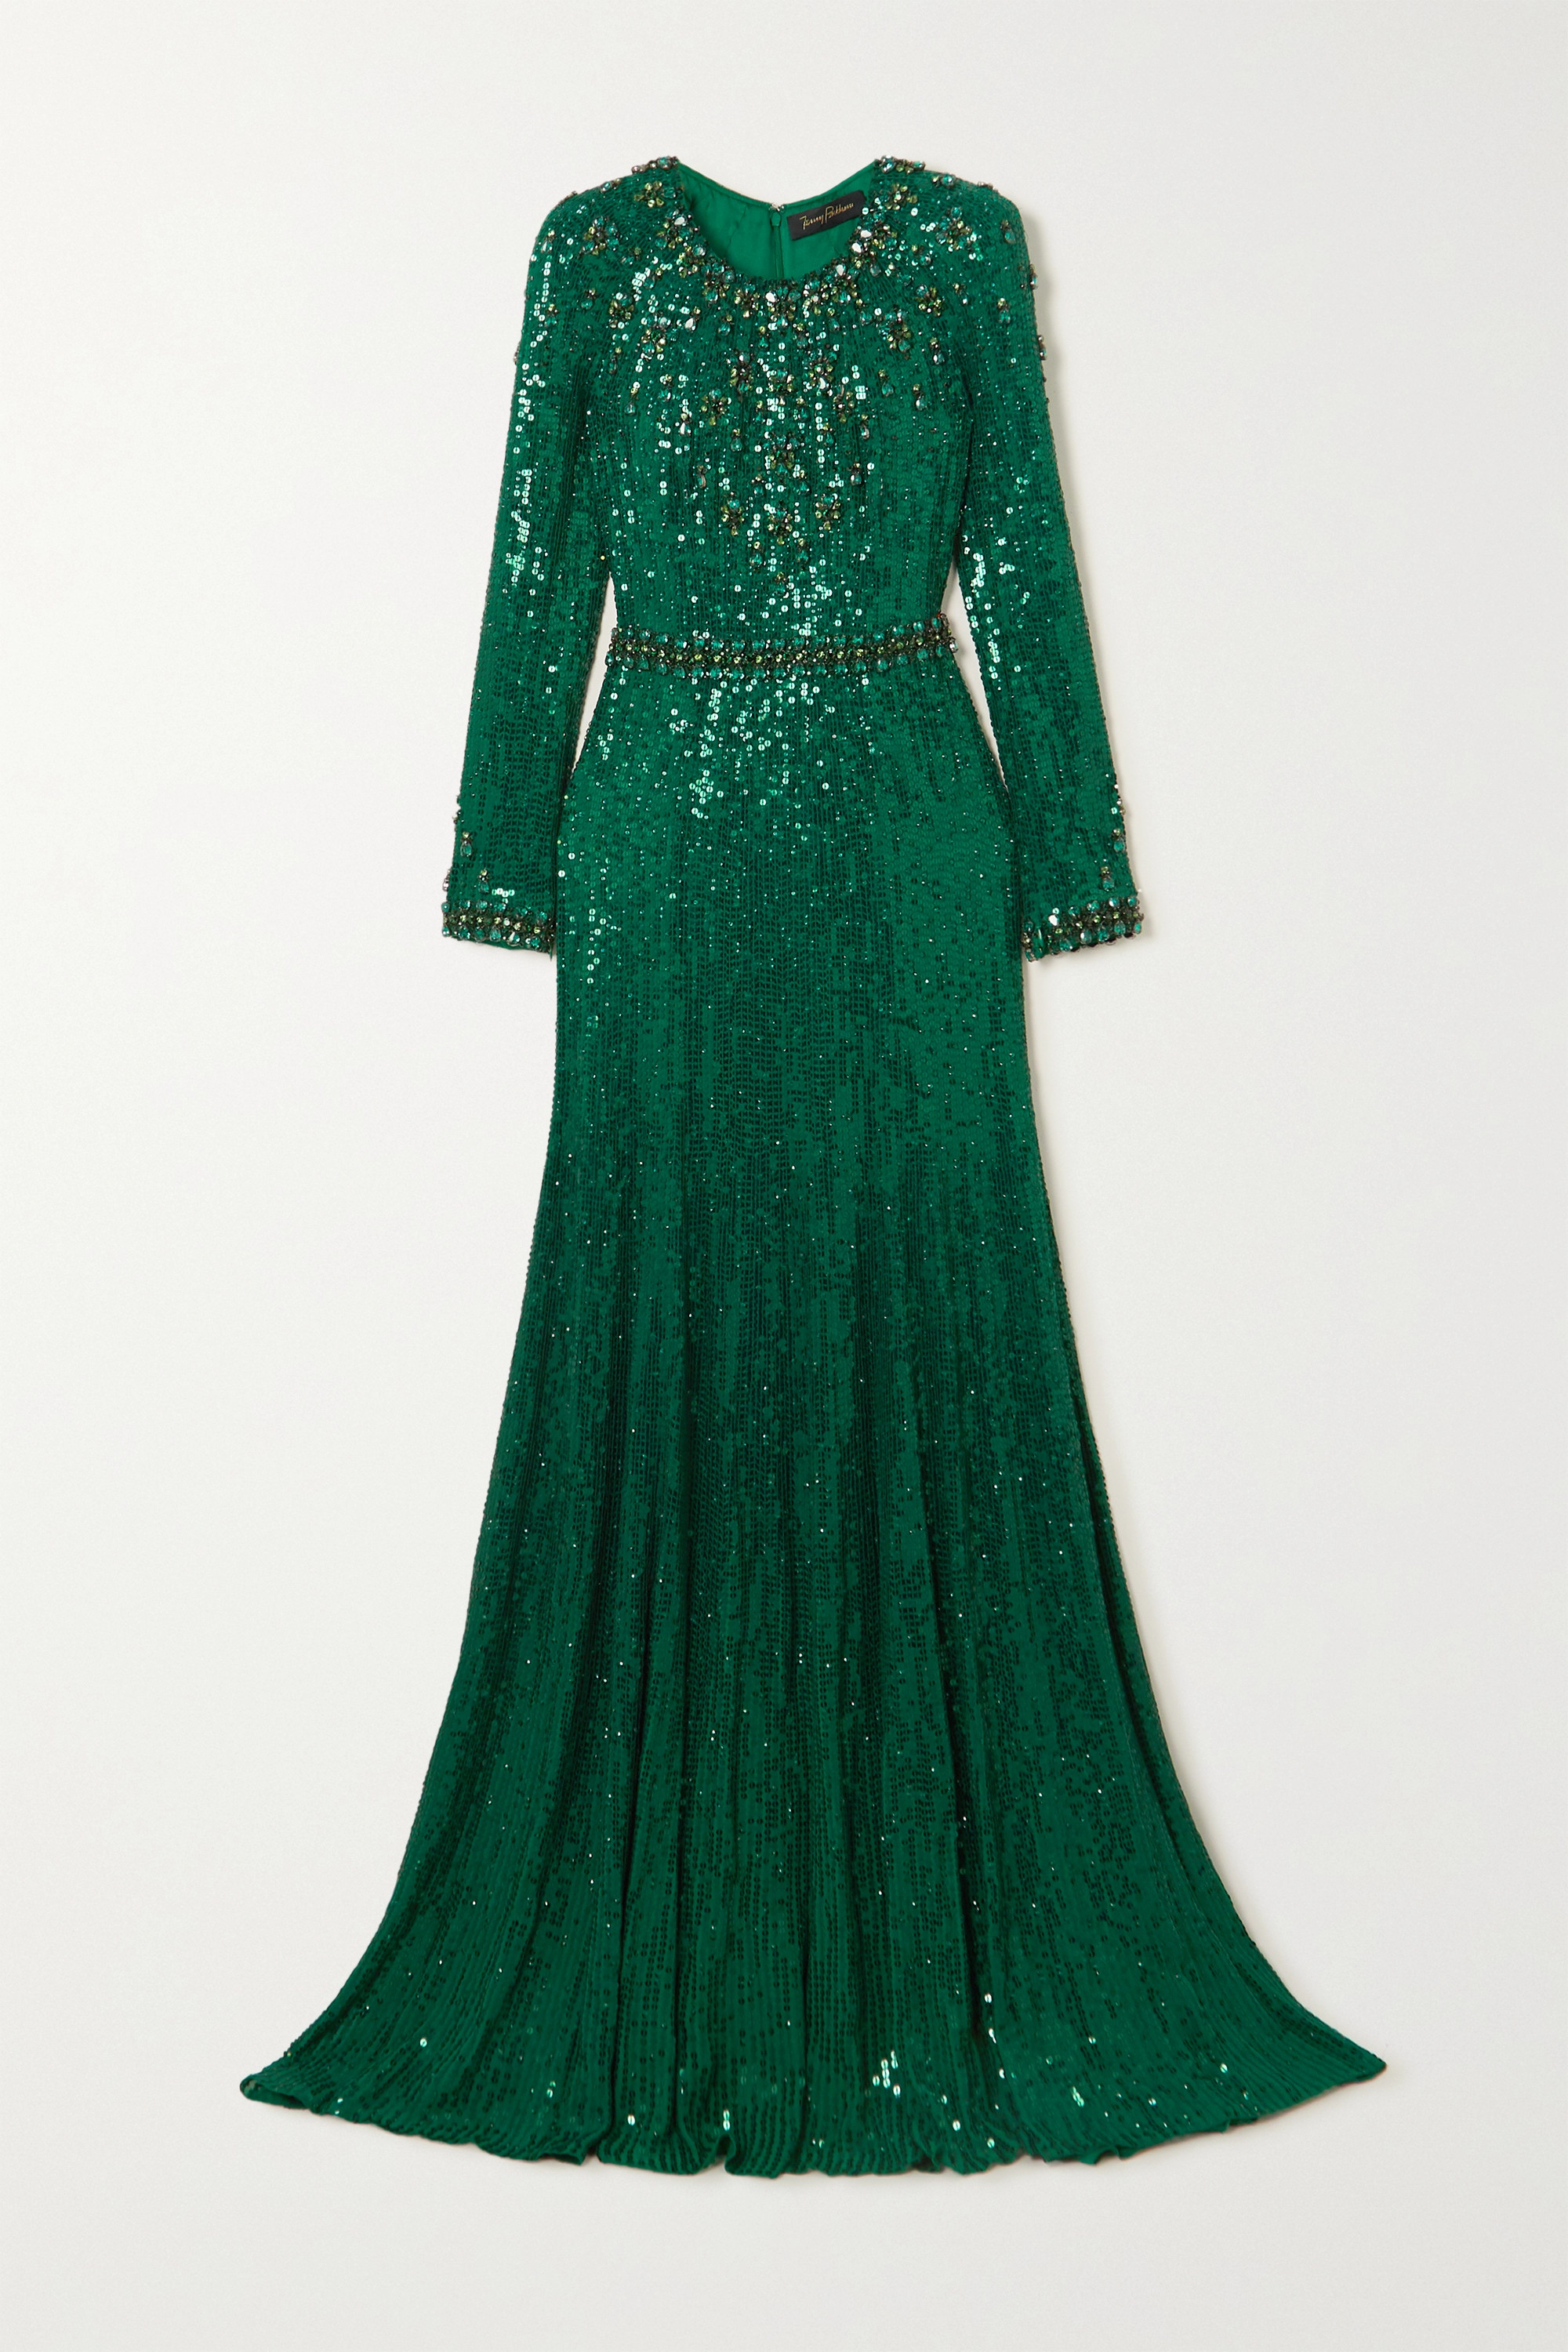 Jenny Packham Tenille Embellished Satin Gown In Forest Green